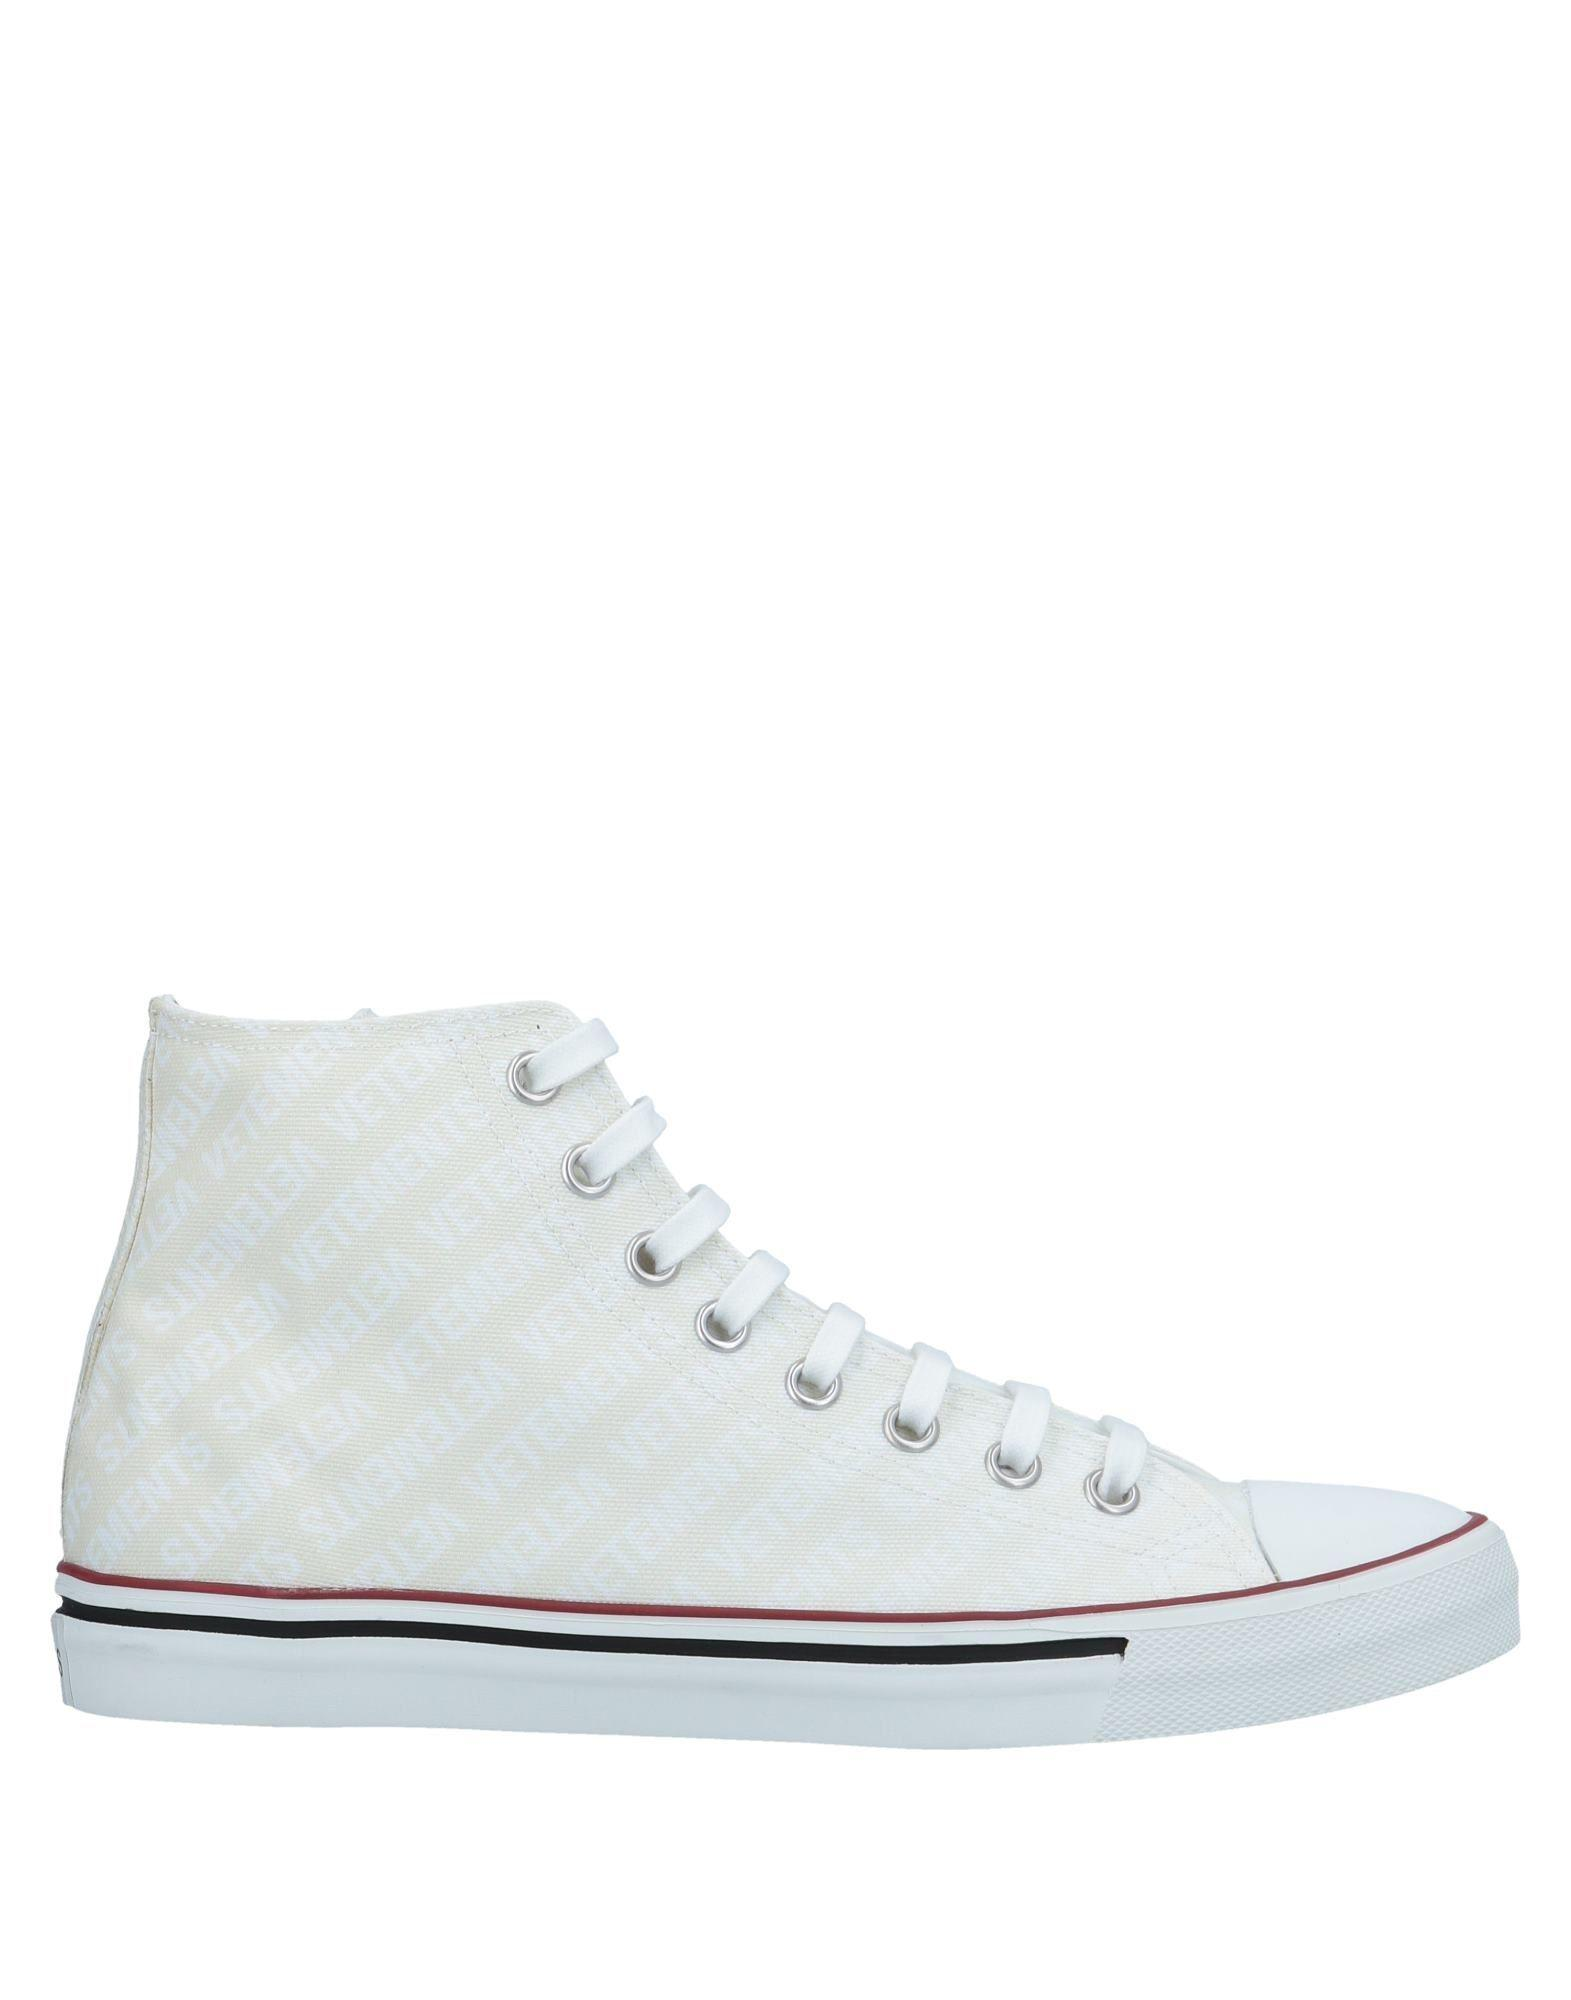 99ccbd269e7a Vetements High-tops   Sneakers in White for Men - Lyst